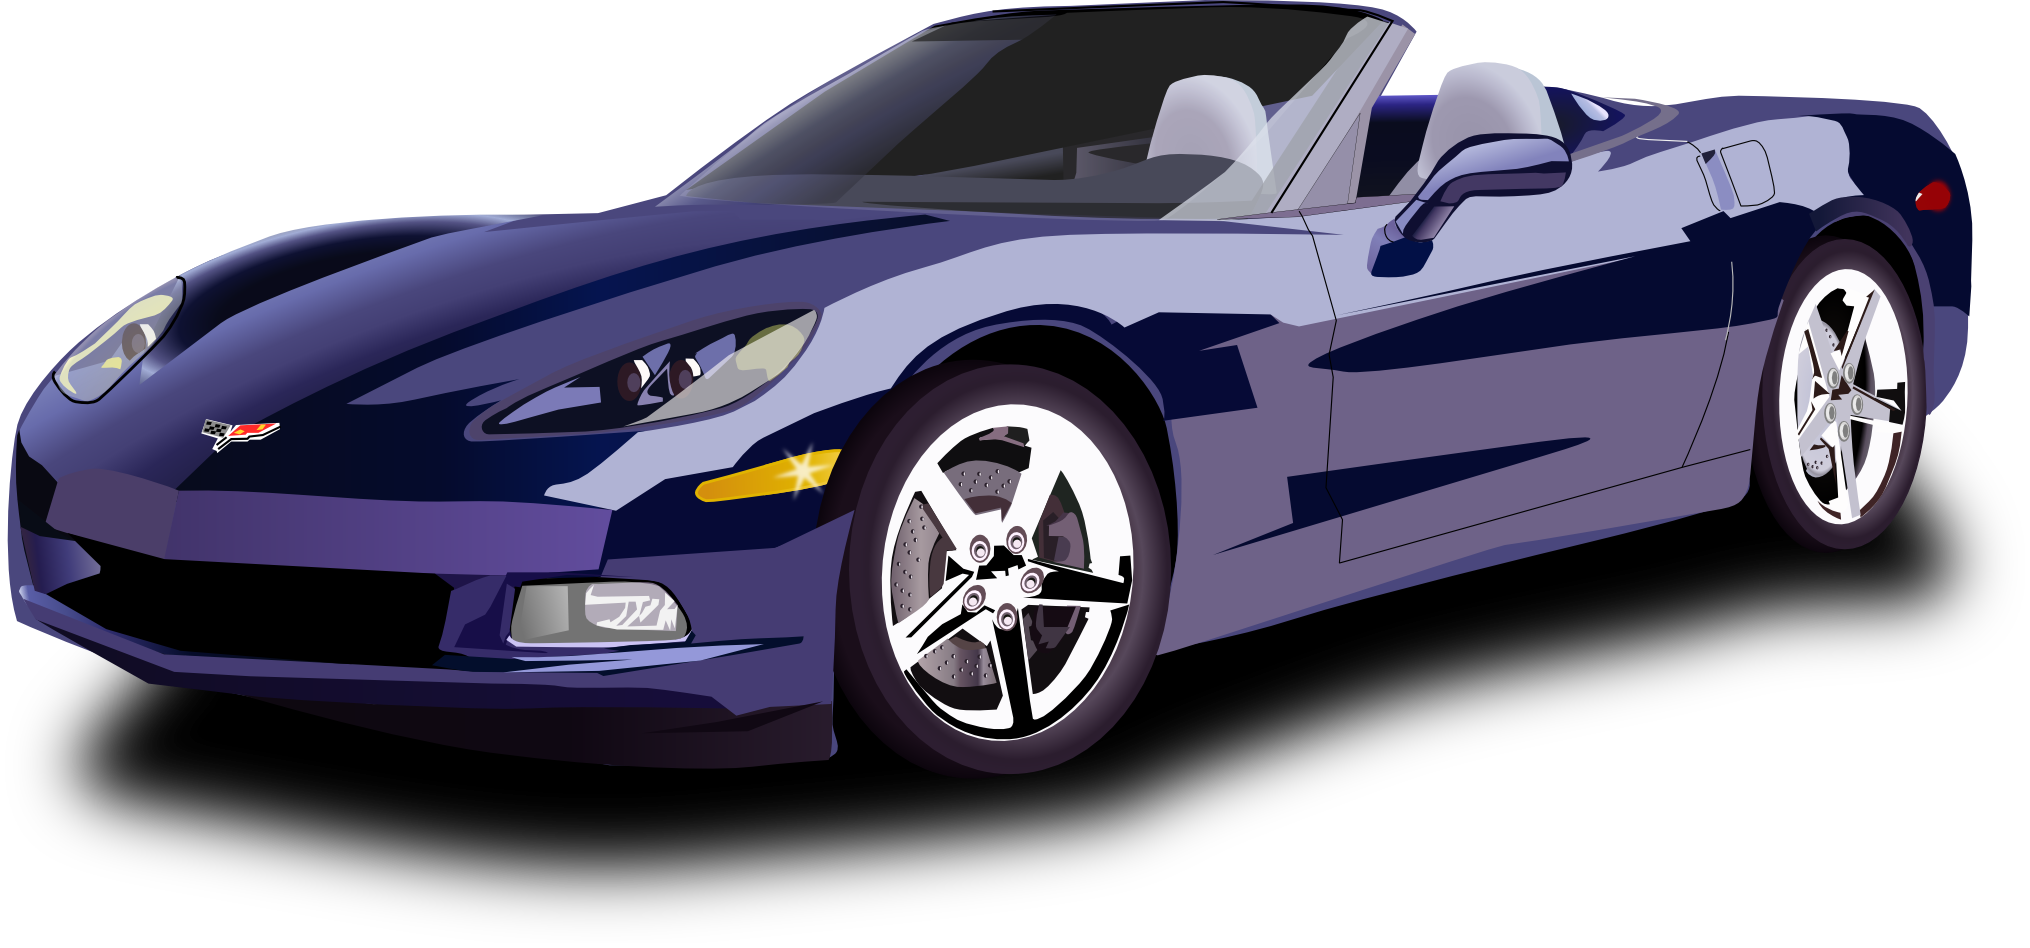 Sports Car PNG Images.